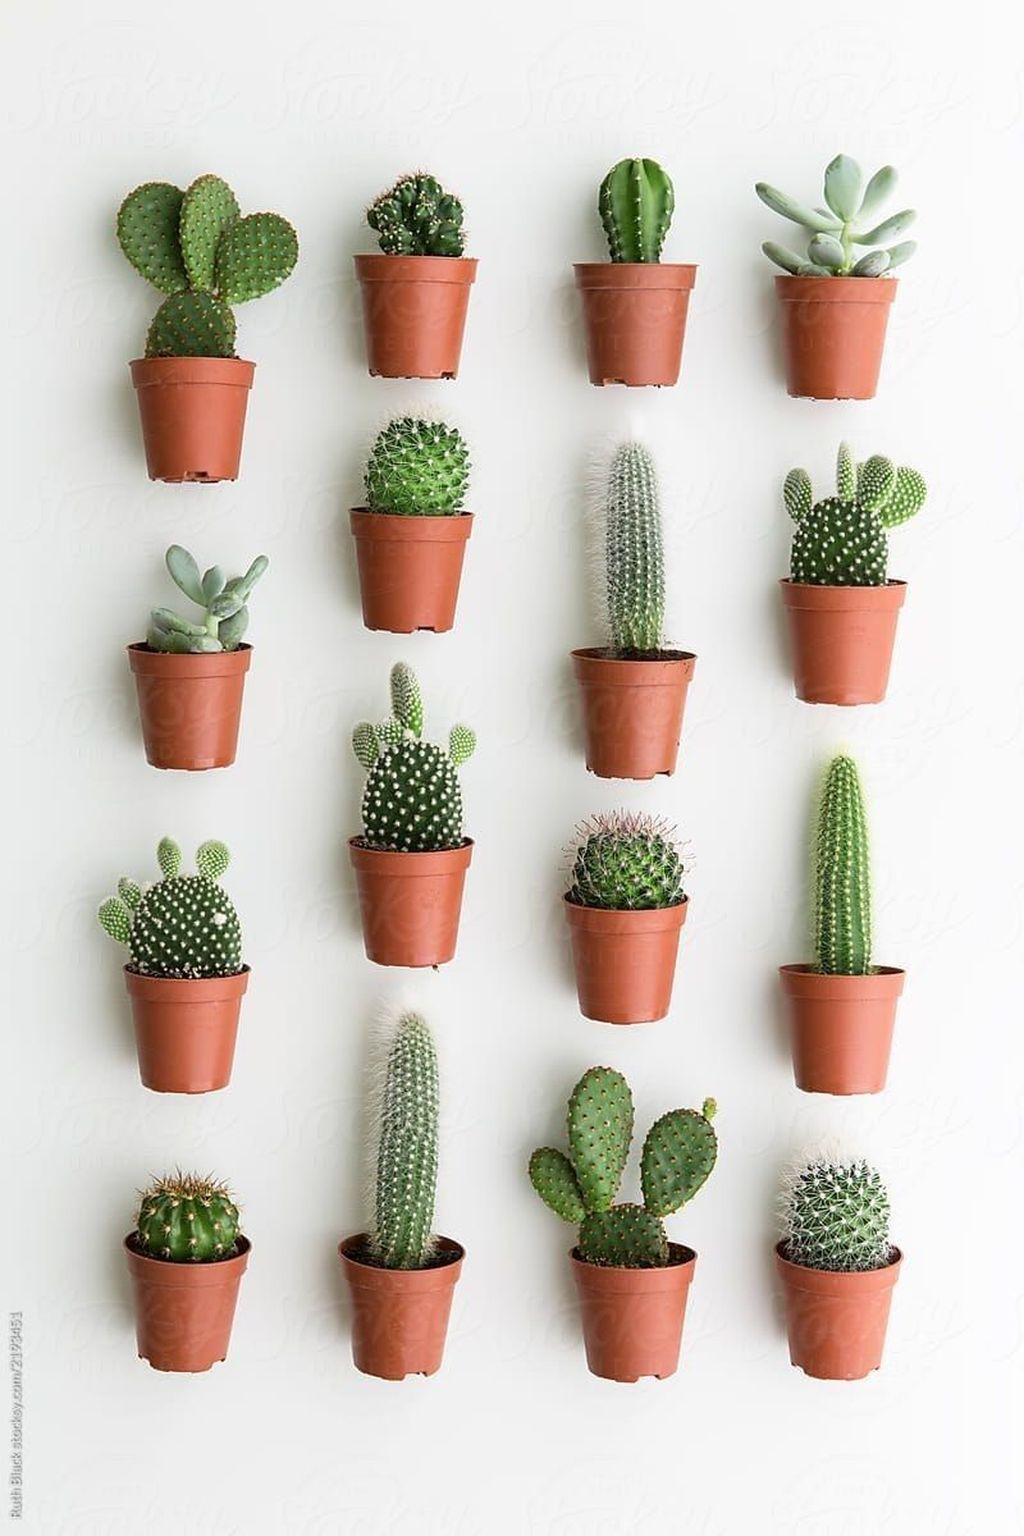 Cool 35 Lovely Small Cactus Ideas For Indoor More At Https